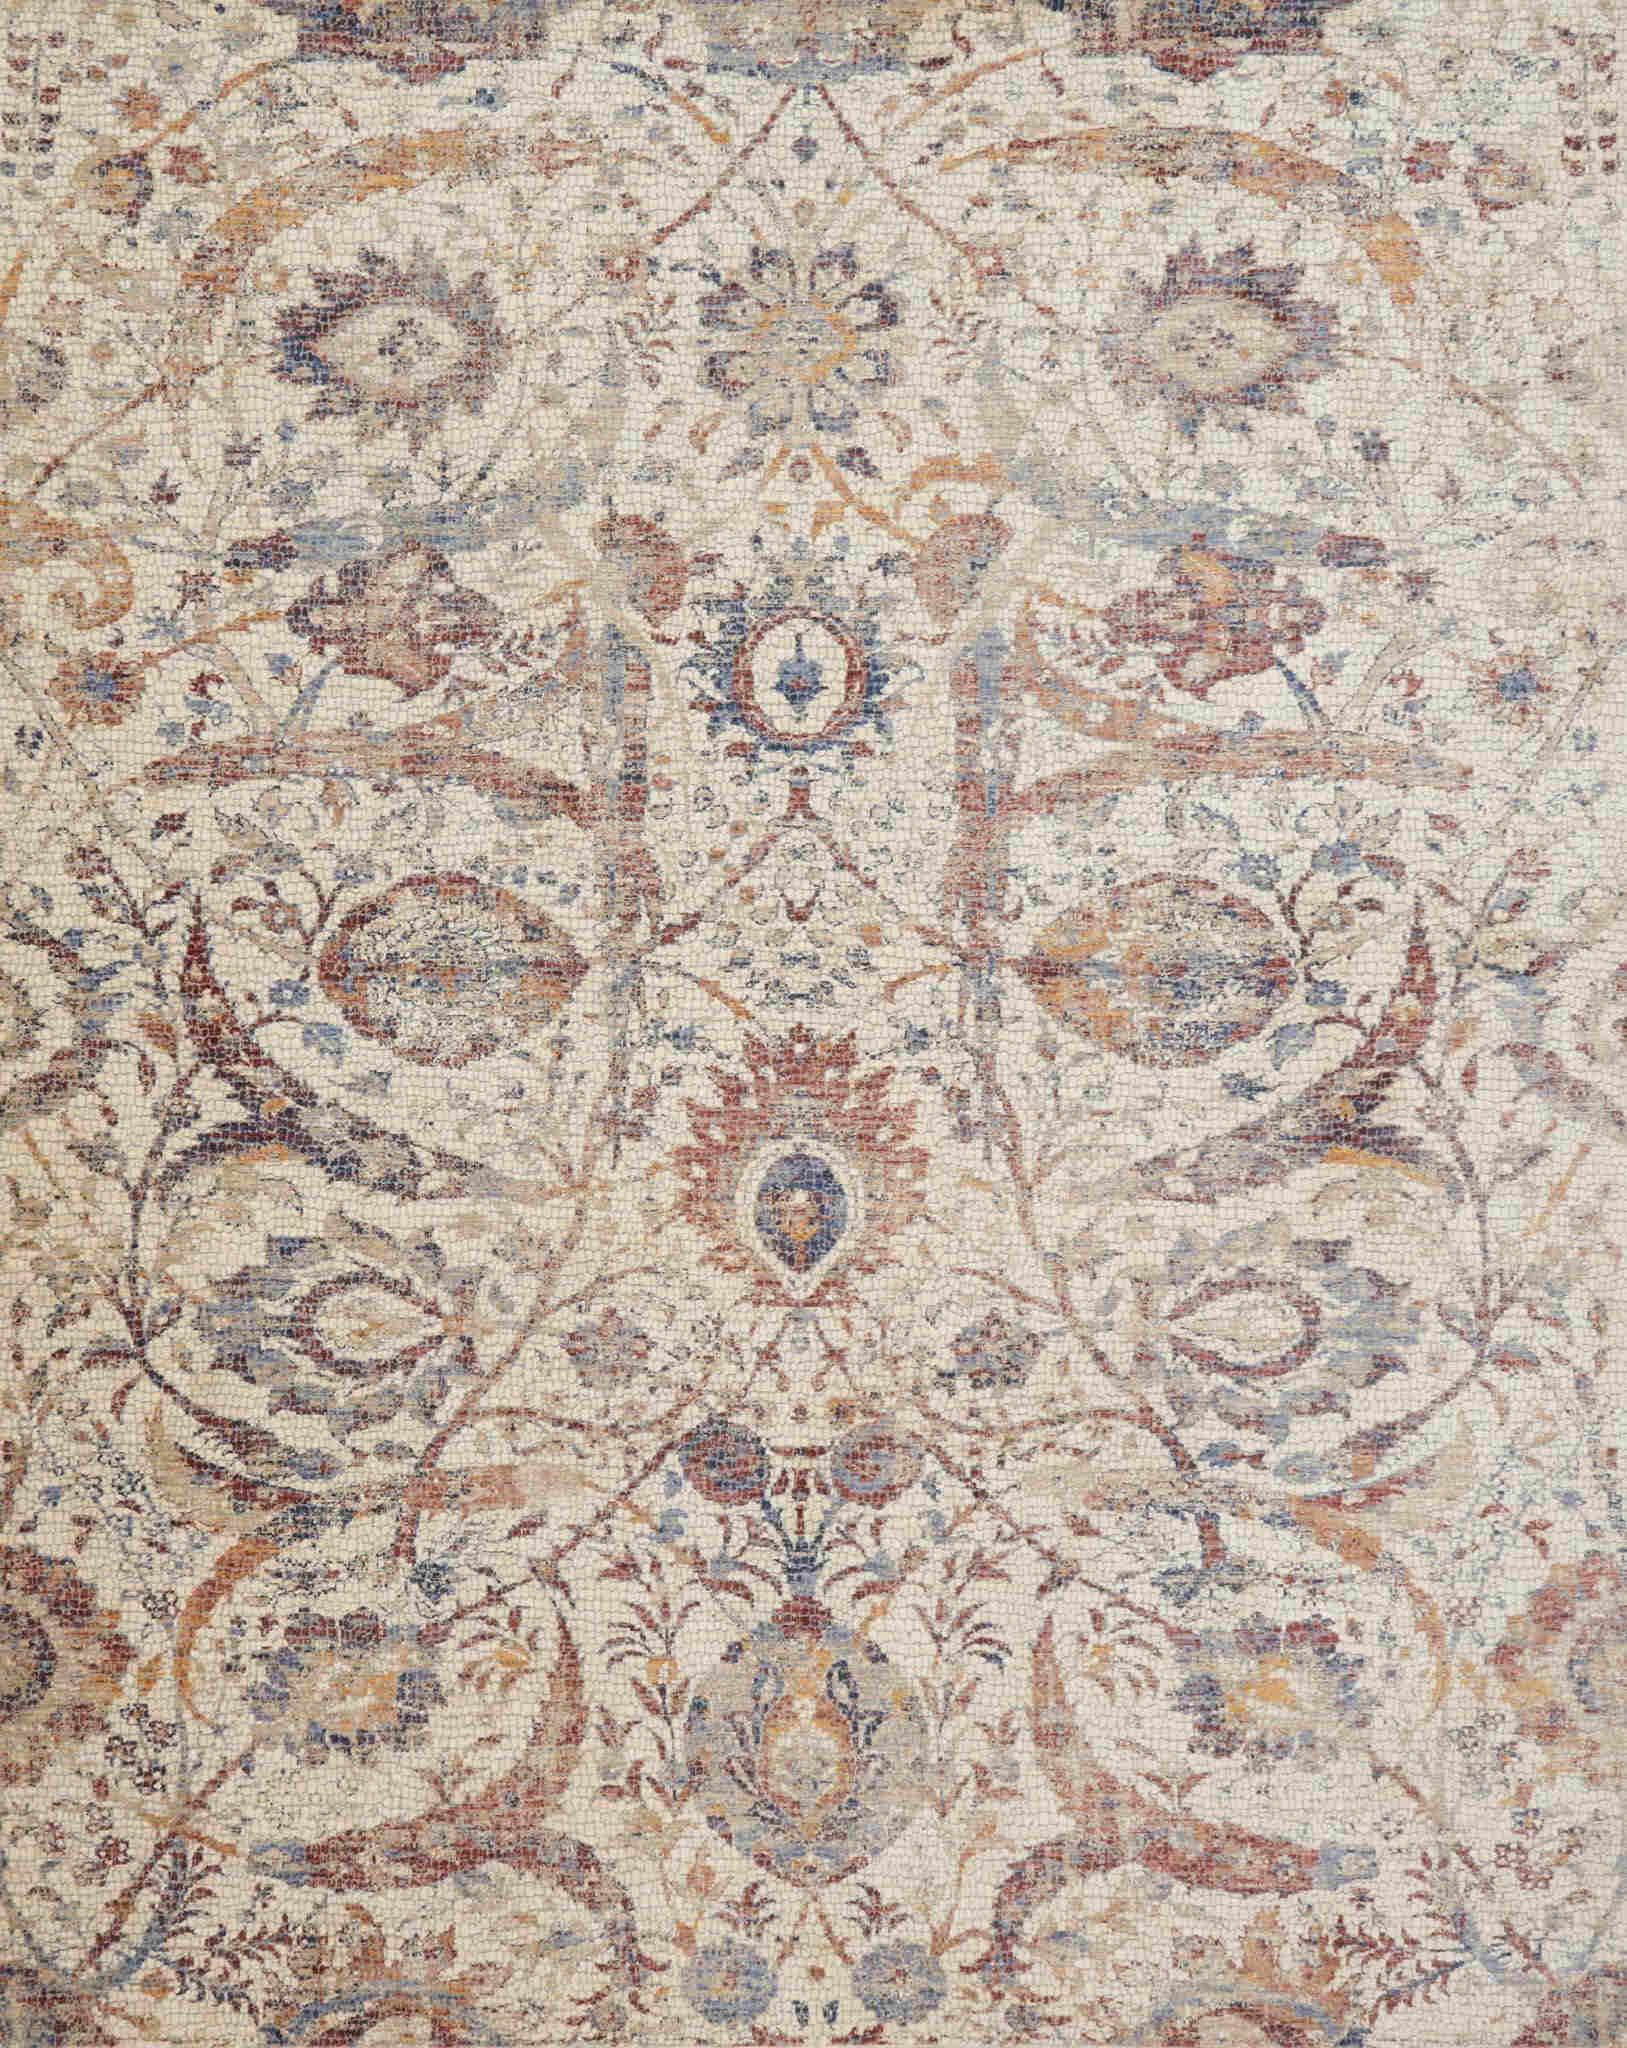 Loloi Porcia Transitional Rugs Pb-03